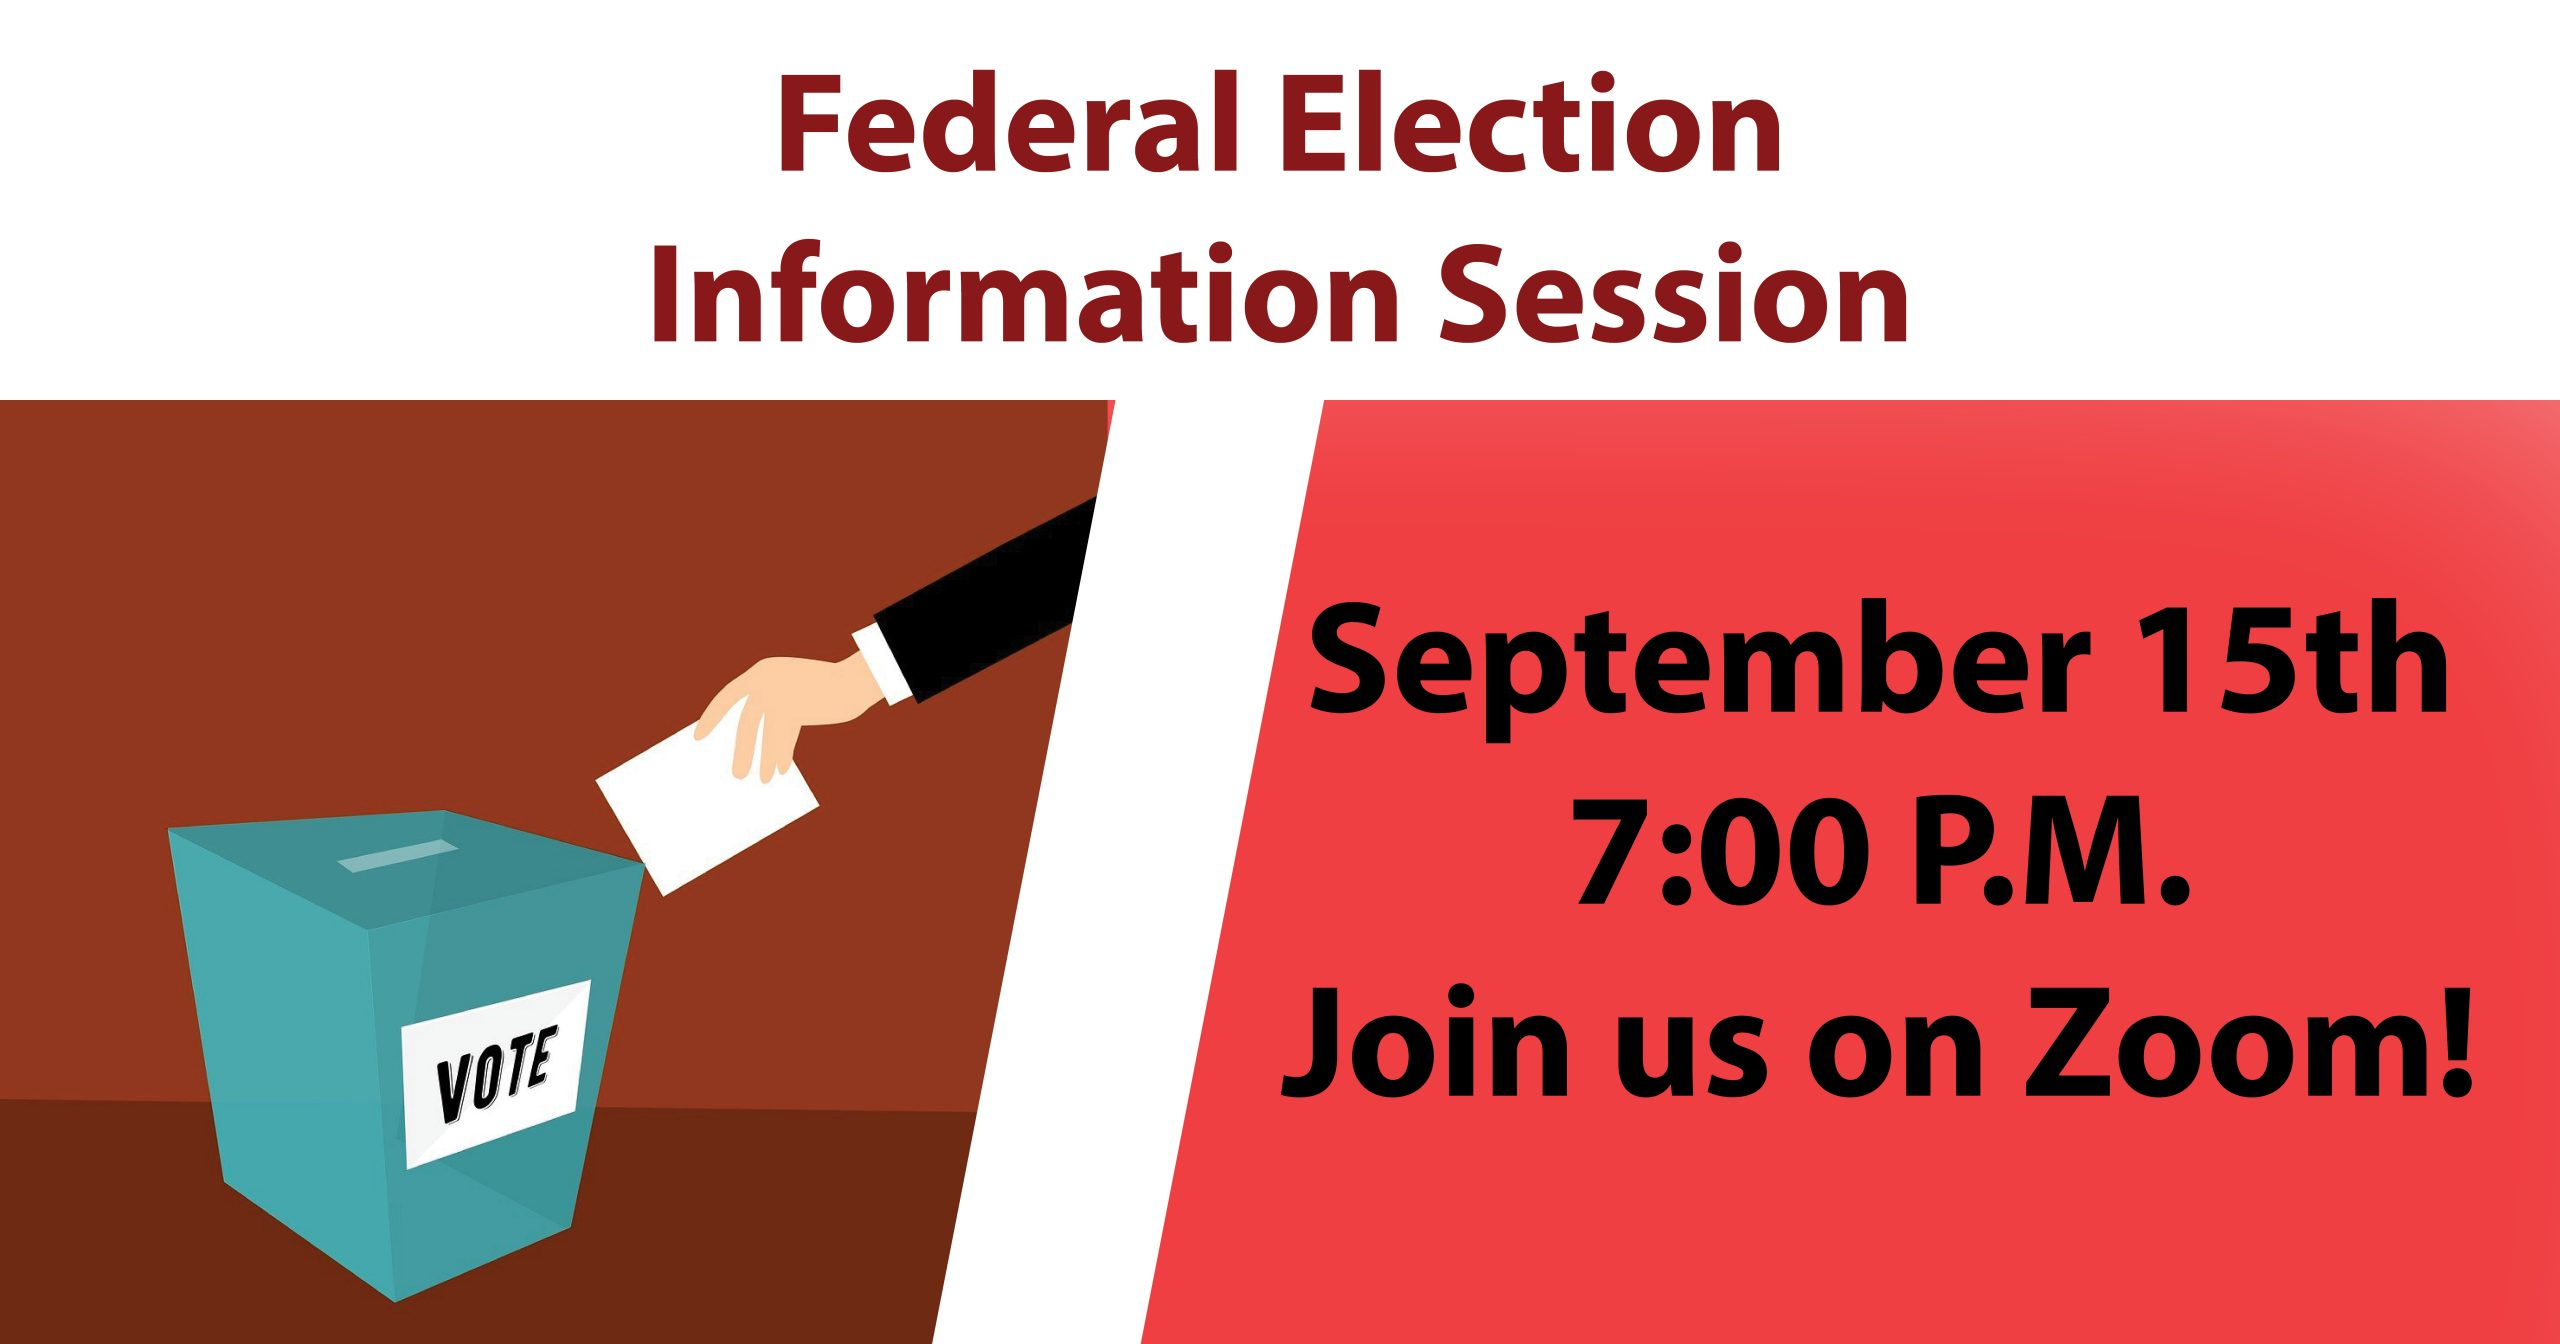 Federal Election Information Session